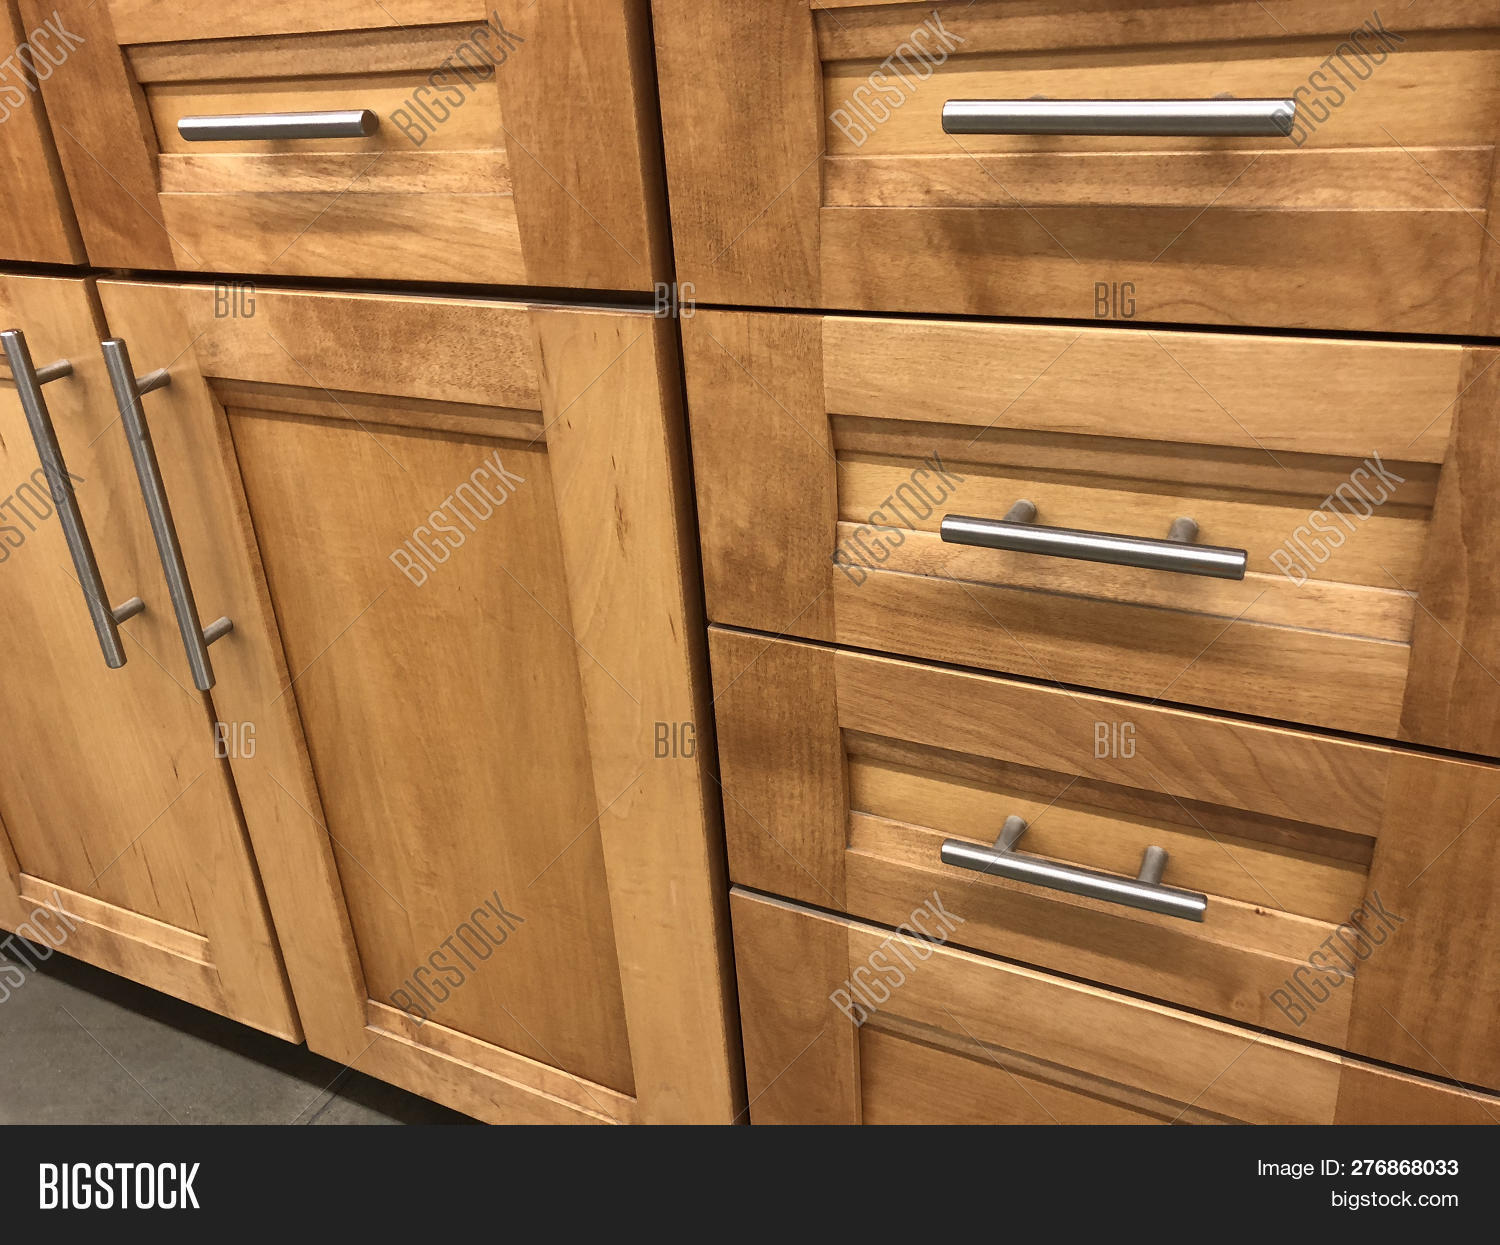 Wood Kitchen Cabinets Image & Photo (Free Trial) | Bigstock